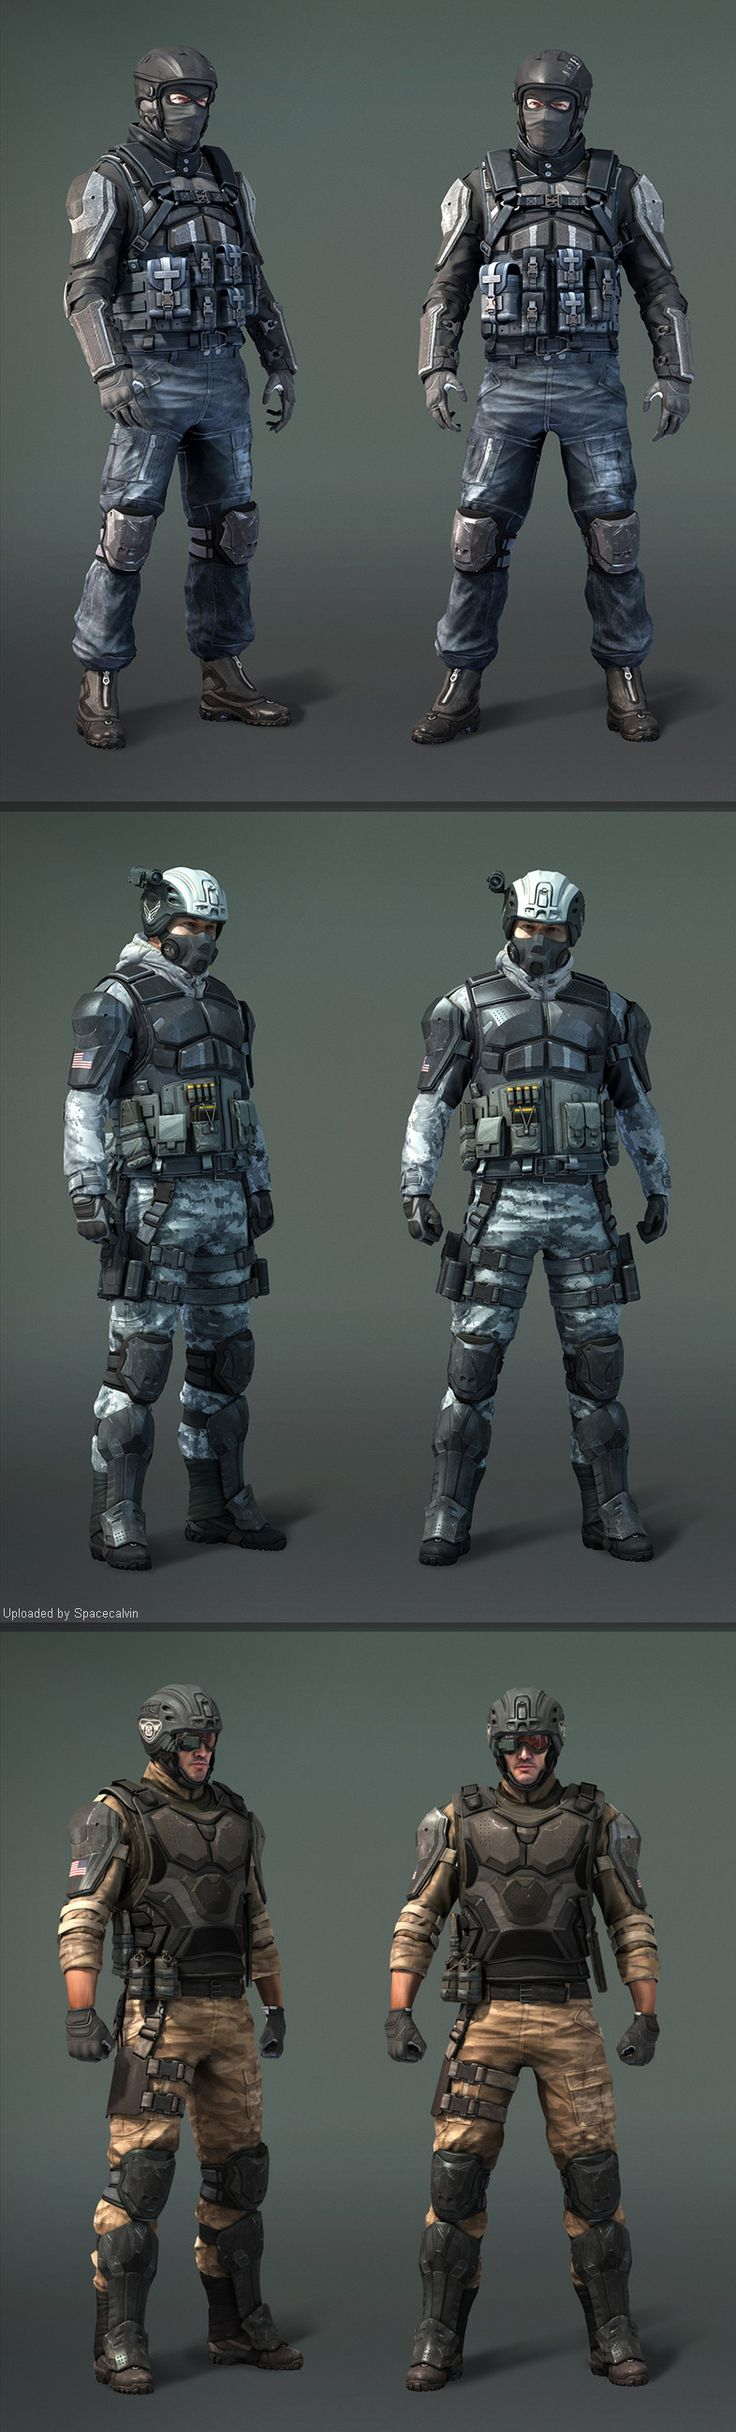 I know we won't be designing the full character, but it may be an idea to change the hands so that they're wearing different attire depending on which dimension they're in. e.g - In the future, have them wearing a futuristic combat suit with modern gloves on.